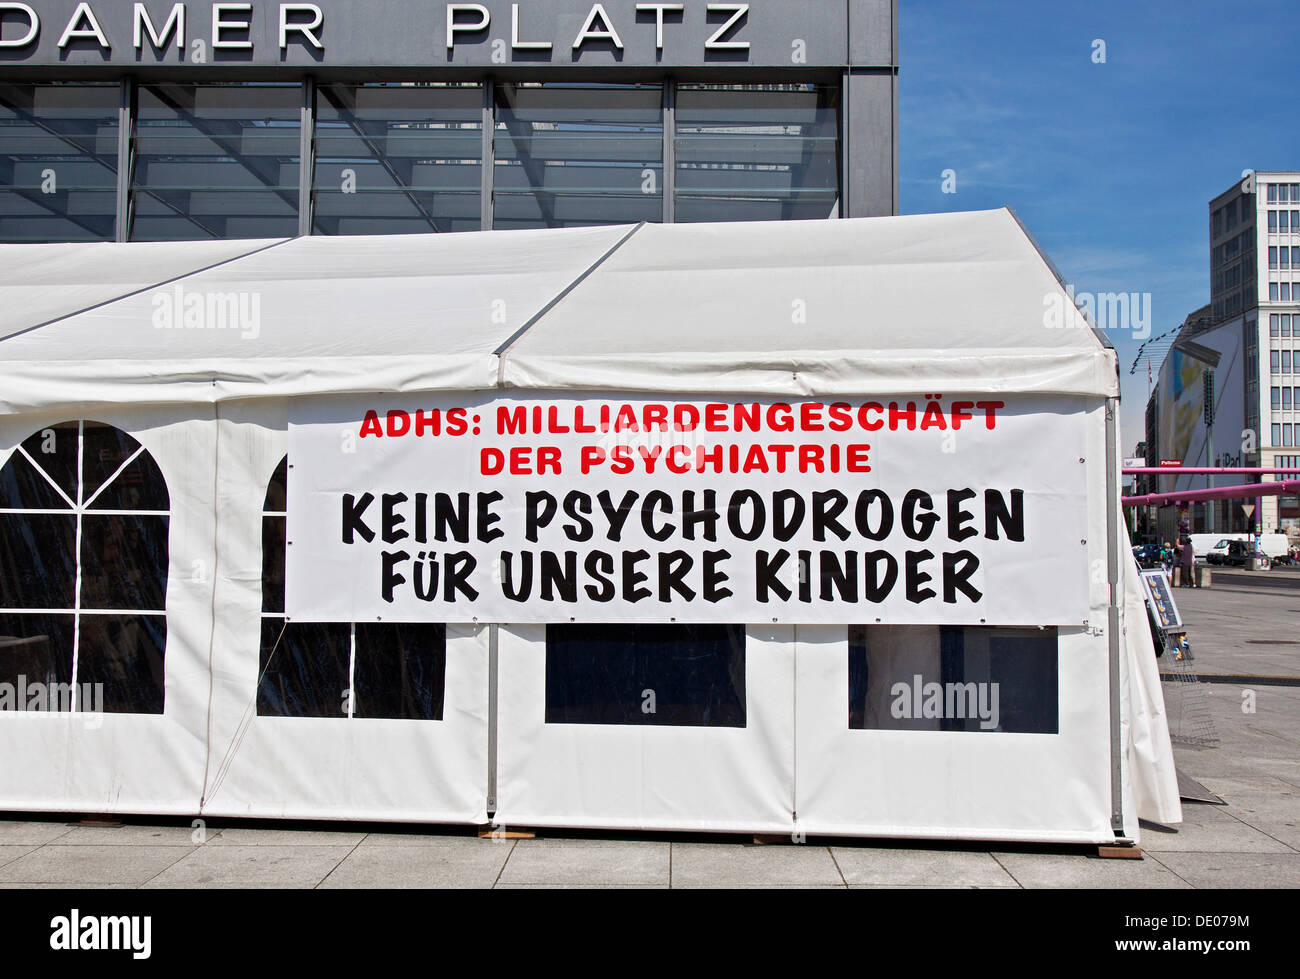 Tent of the Citizens Commission on Human Rights, CCHR, ADHD, poster, lettering 'Milliardengeschaeft der Psychatrie, Keine - Stock Image